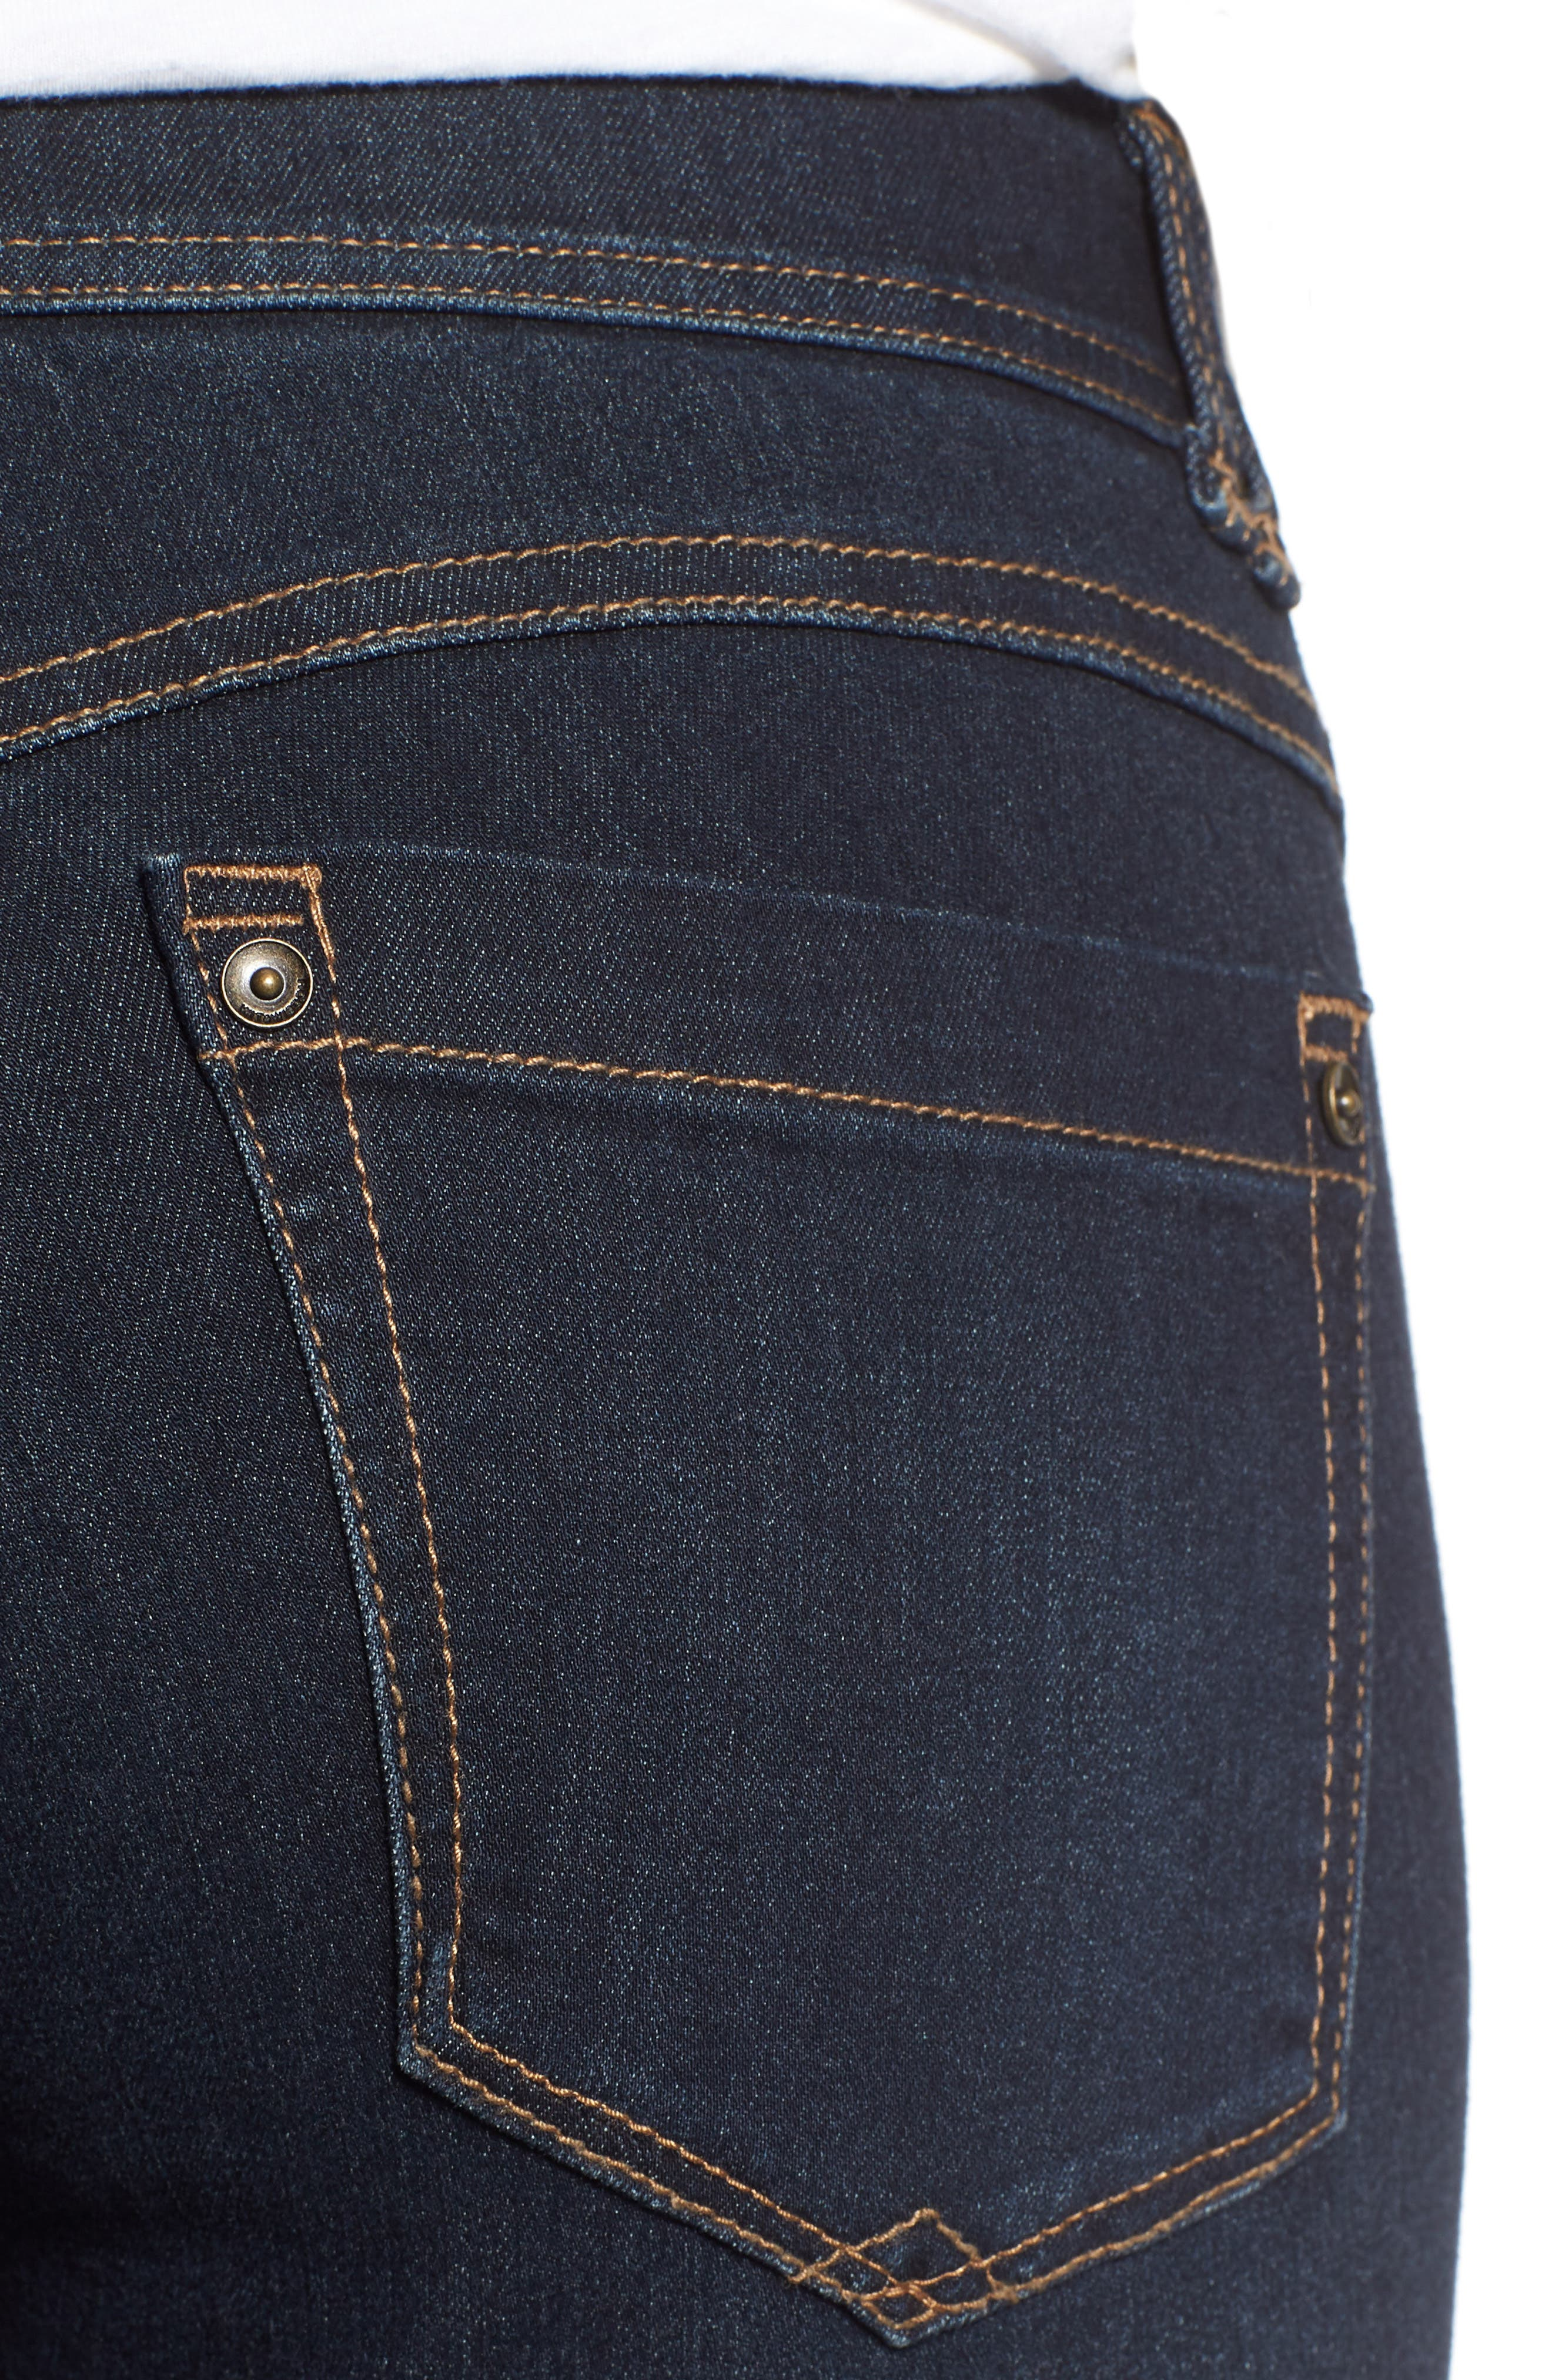 Ab-solution Itty Bitty Bootcut Jeans,                             Alternate thumbnail 4, color,                             402